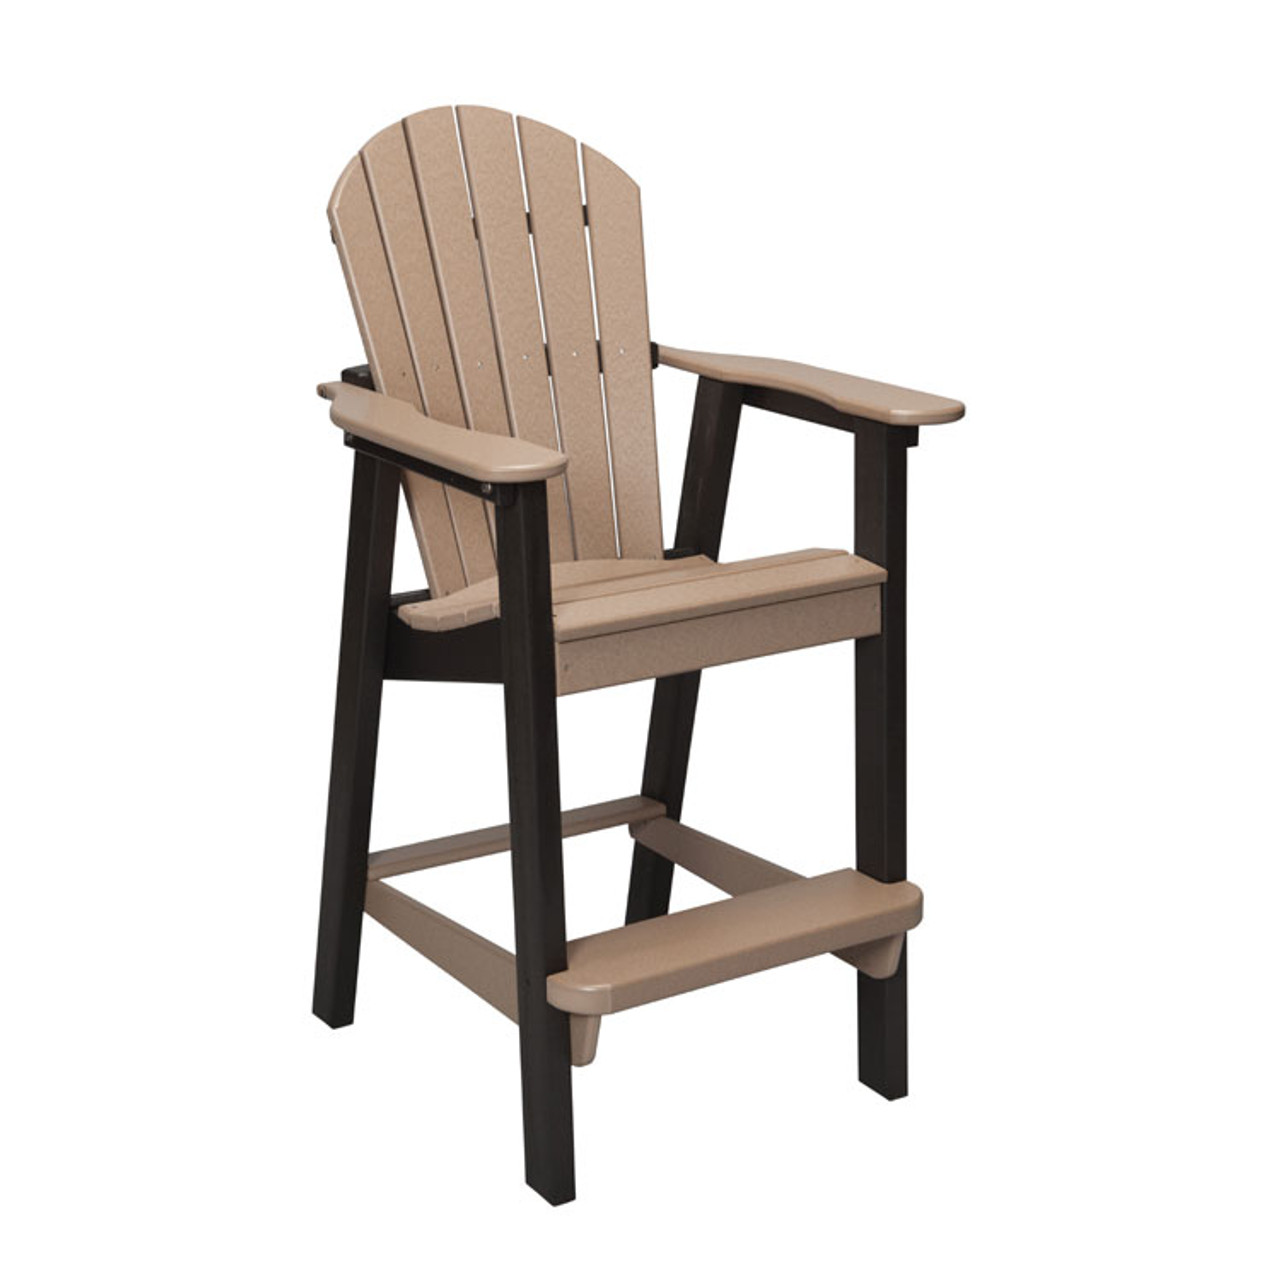 Oceanside Outdoor Poly Lumber Counter Height Stool with Arms